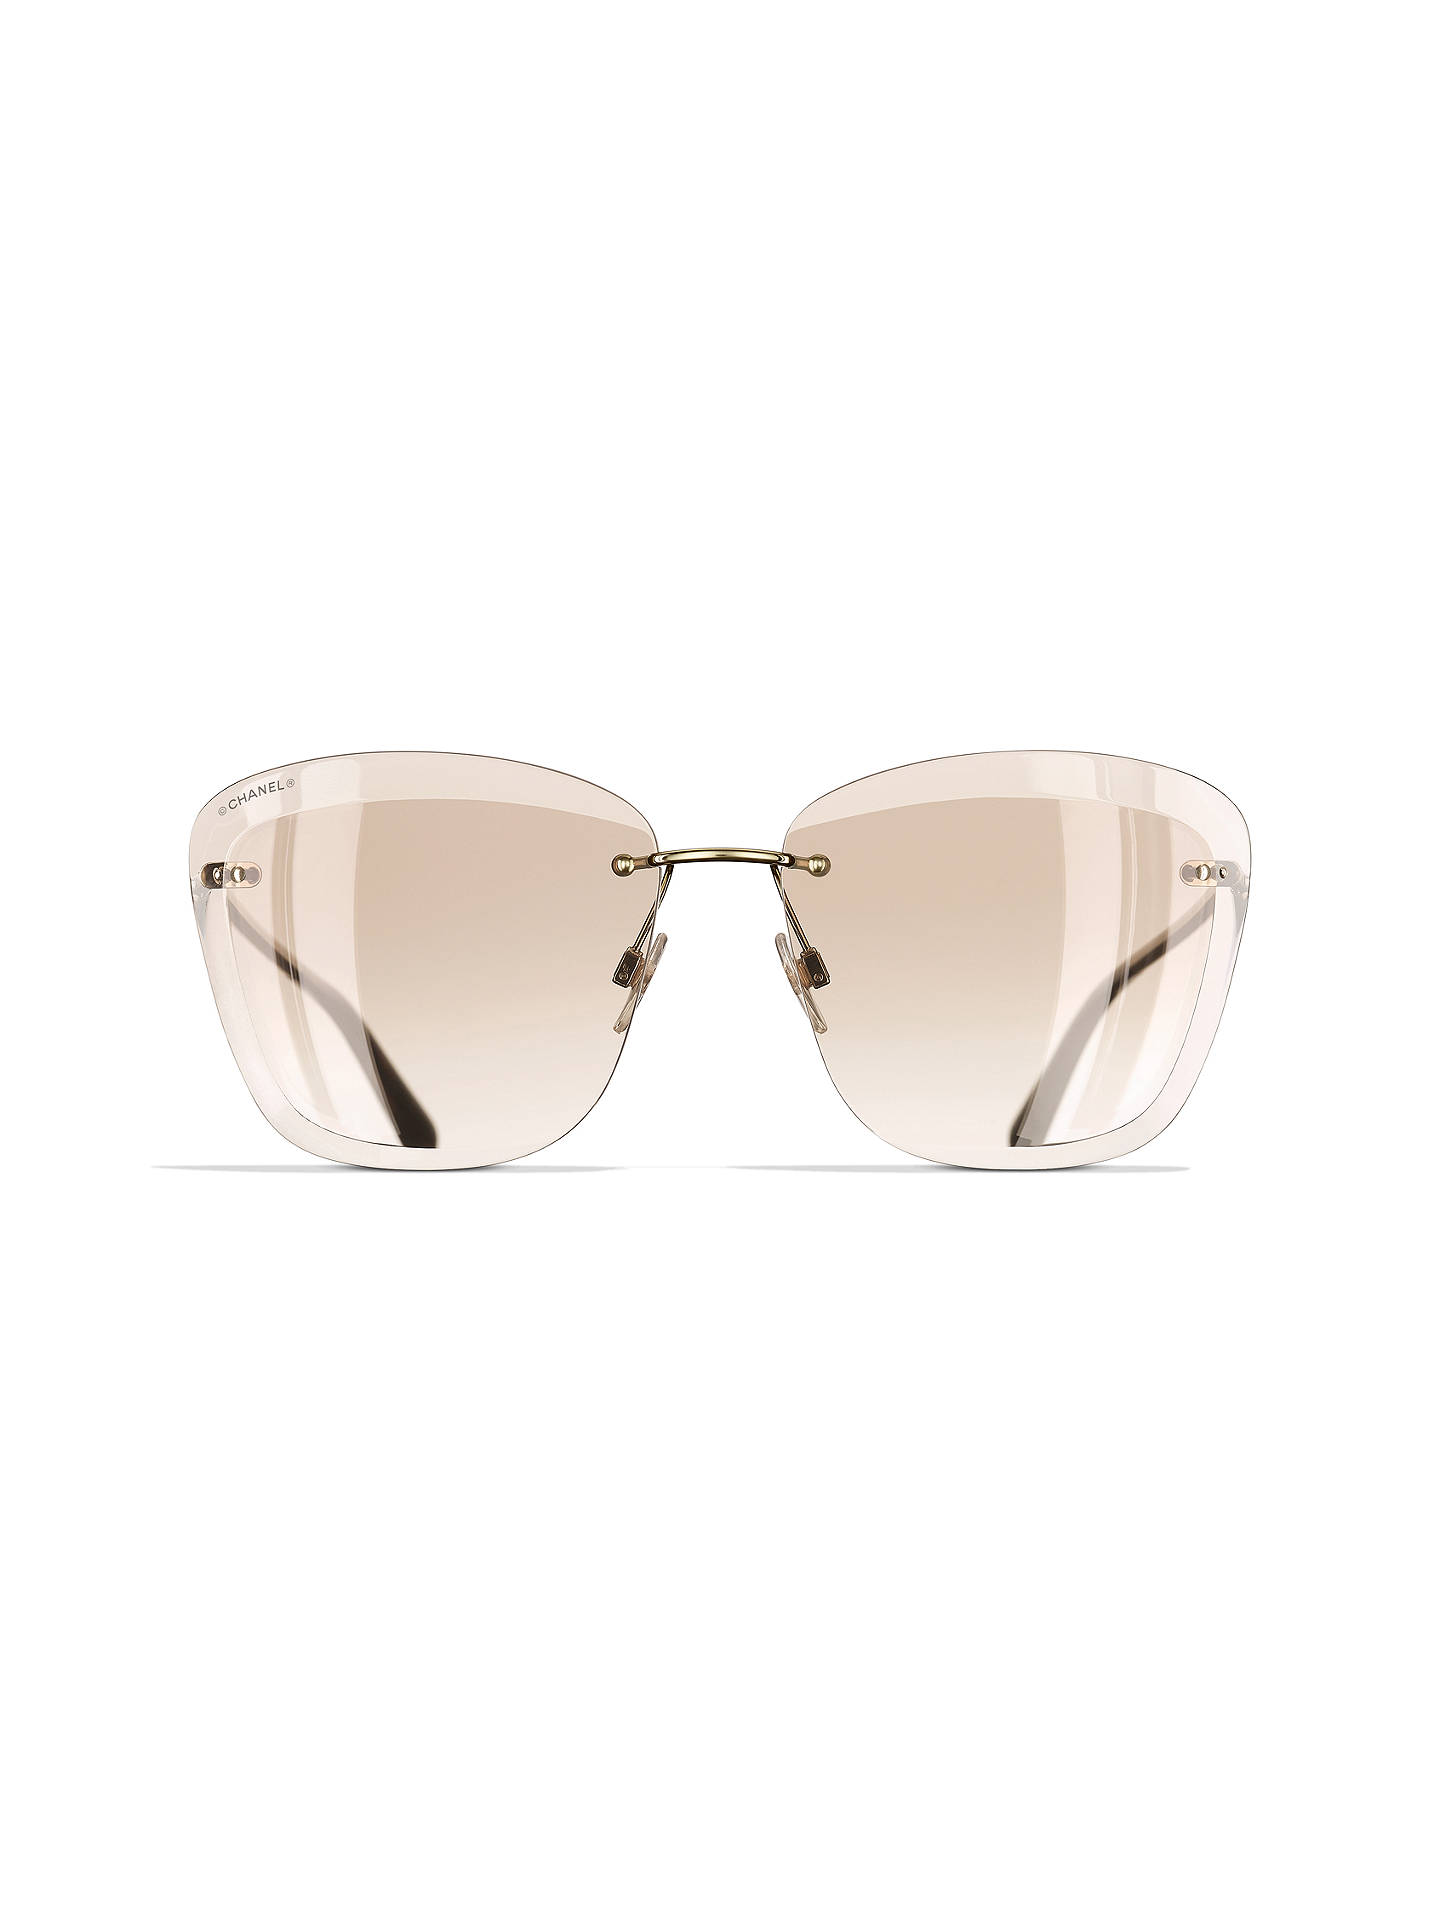 9011f0295a ... BuyCHANEL Butterfly Sunglasses CH4221 Gold Beige Online at  johnlewis.com ...